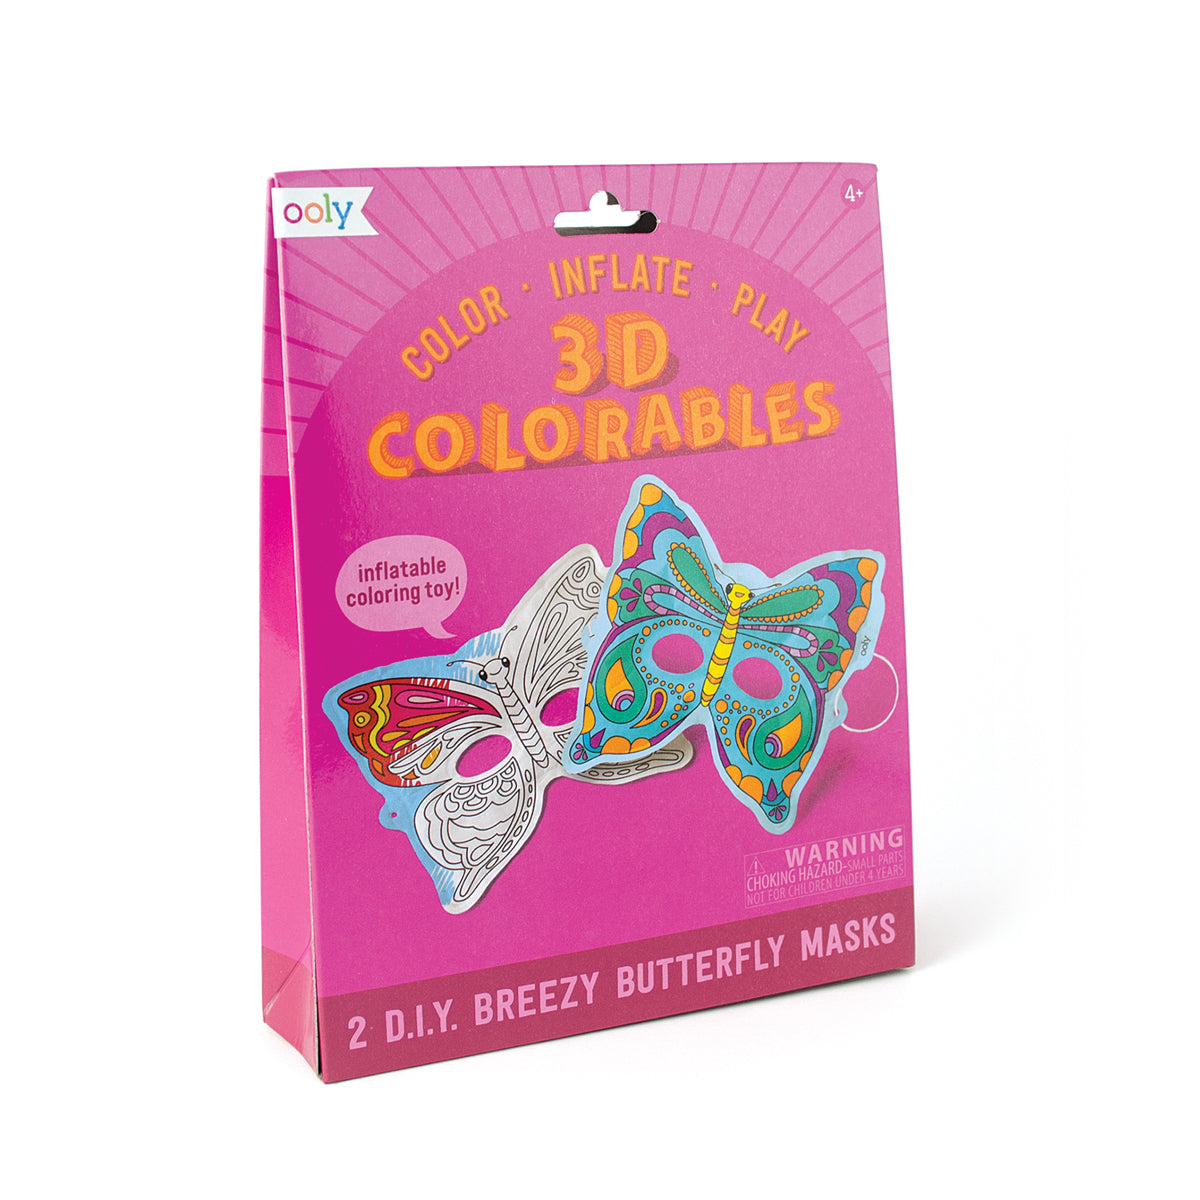 3D Colorables - Breezy Butterfly Masks